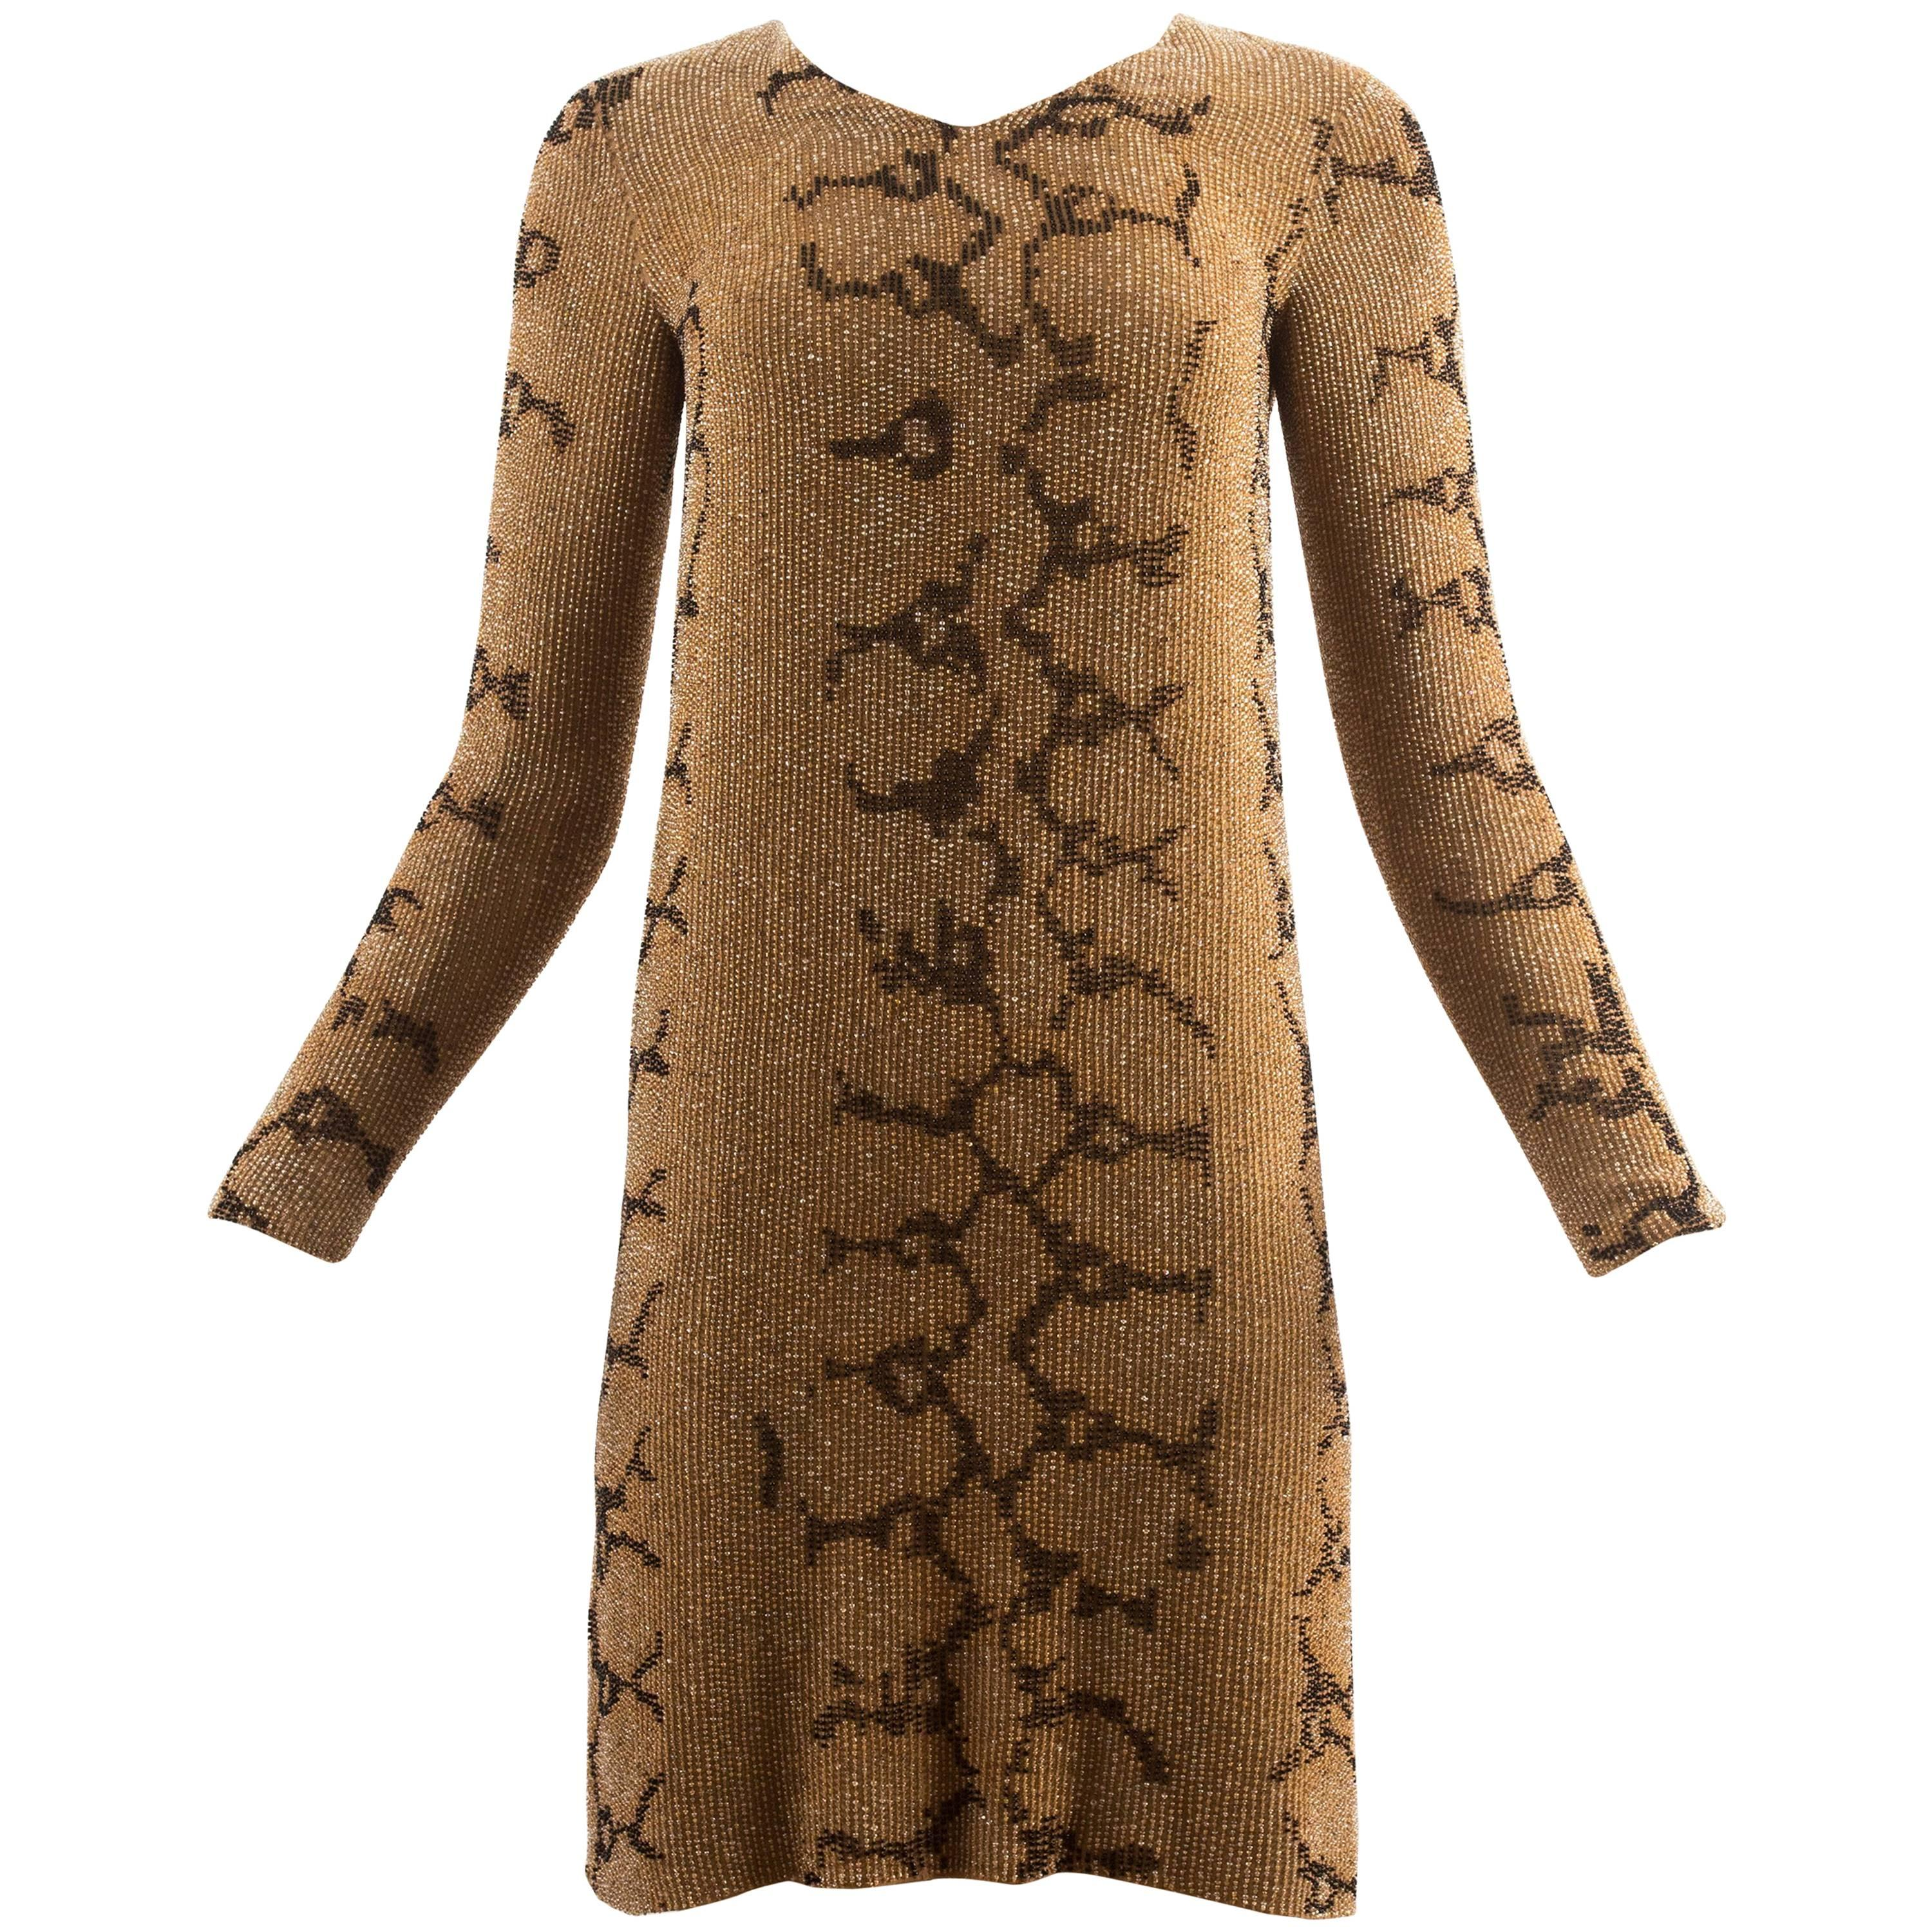 Tom Ford for Gucci Spring-Summer 2000 beaded python print shift dress